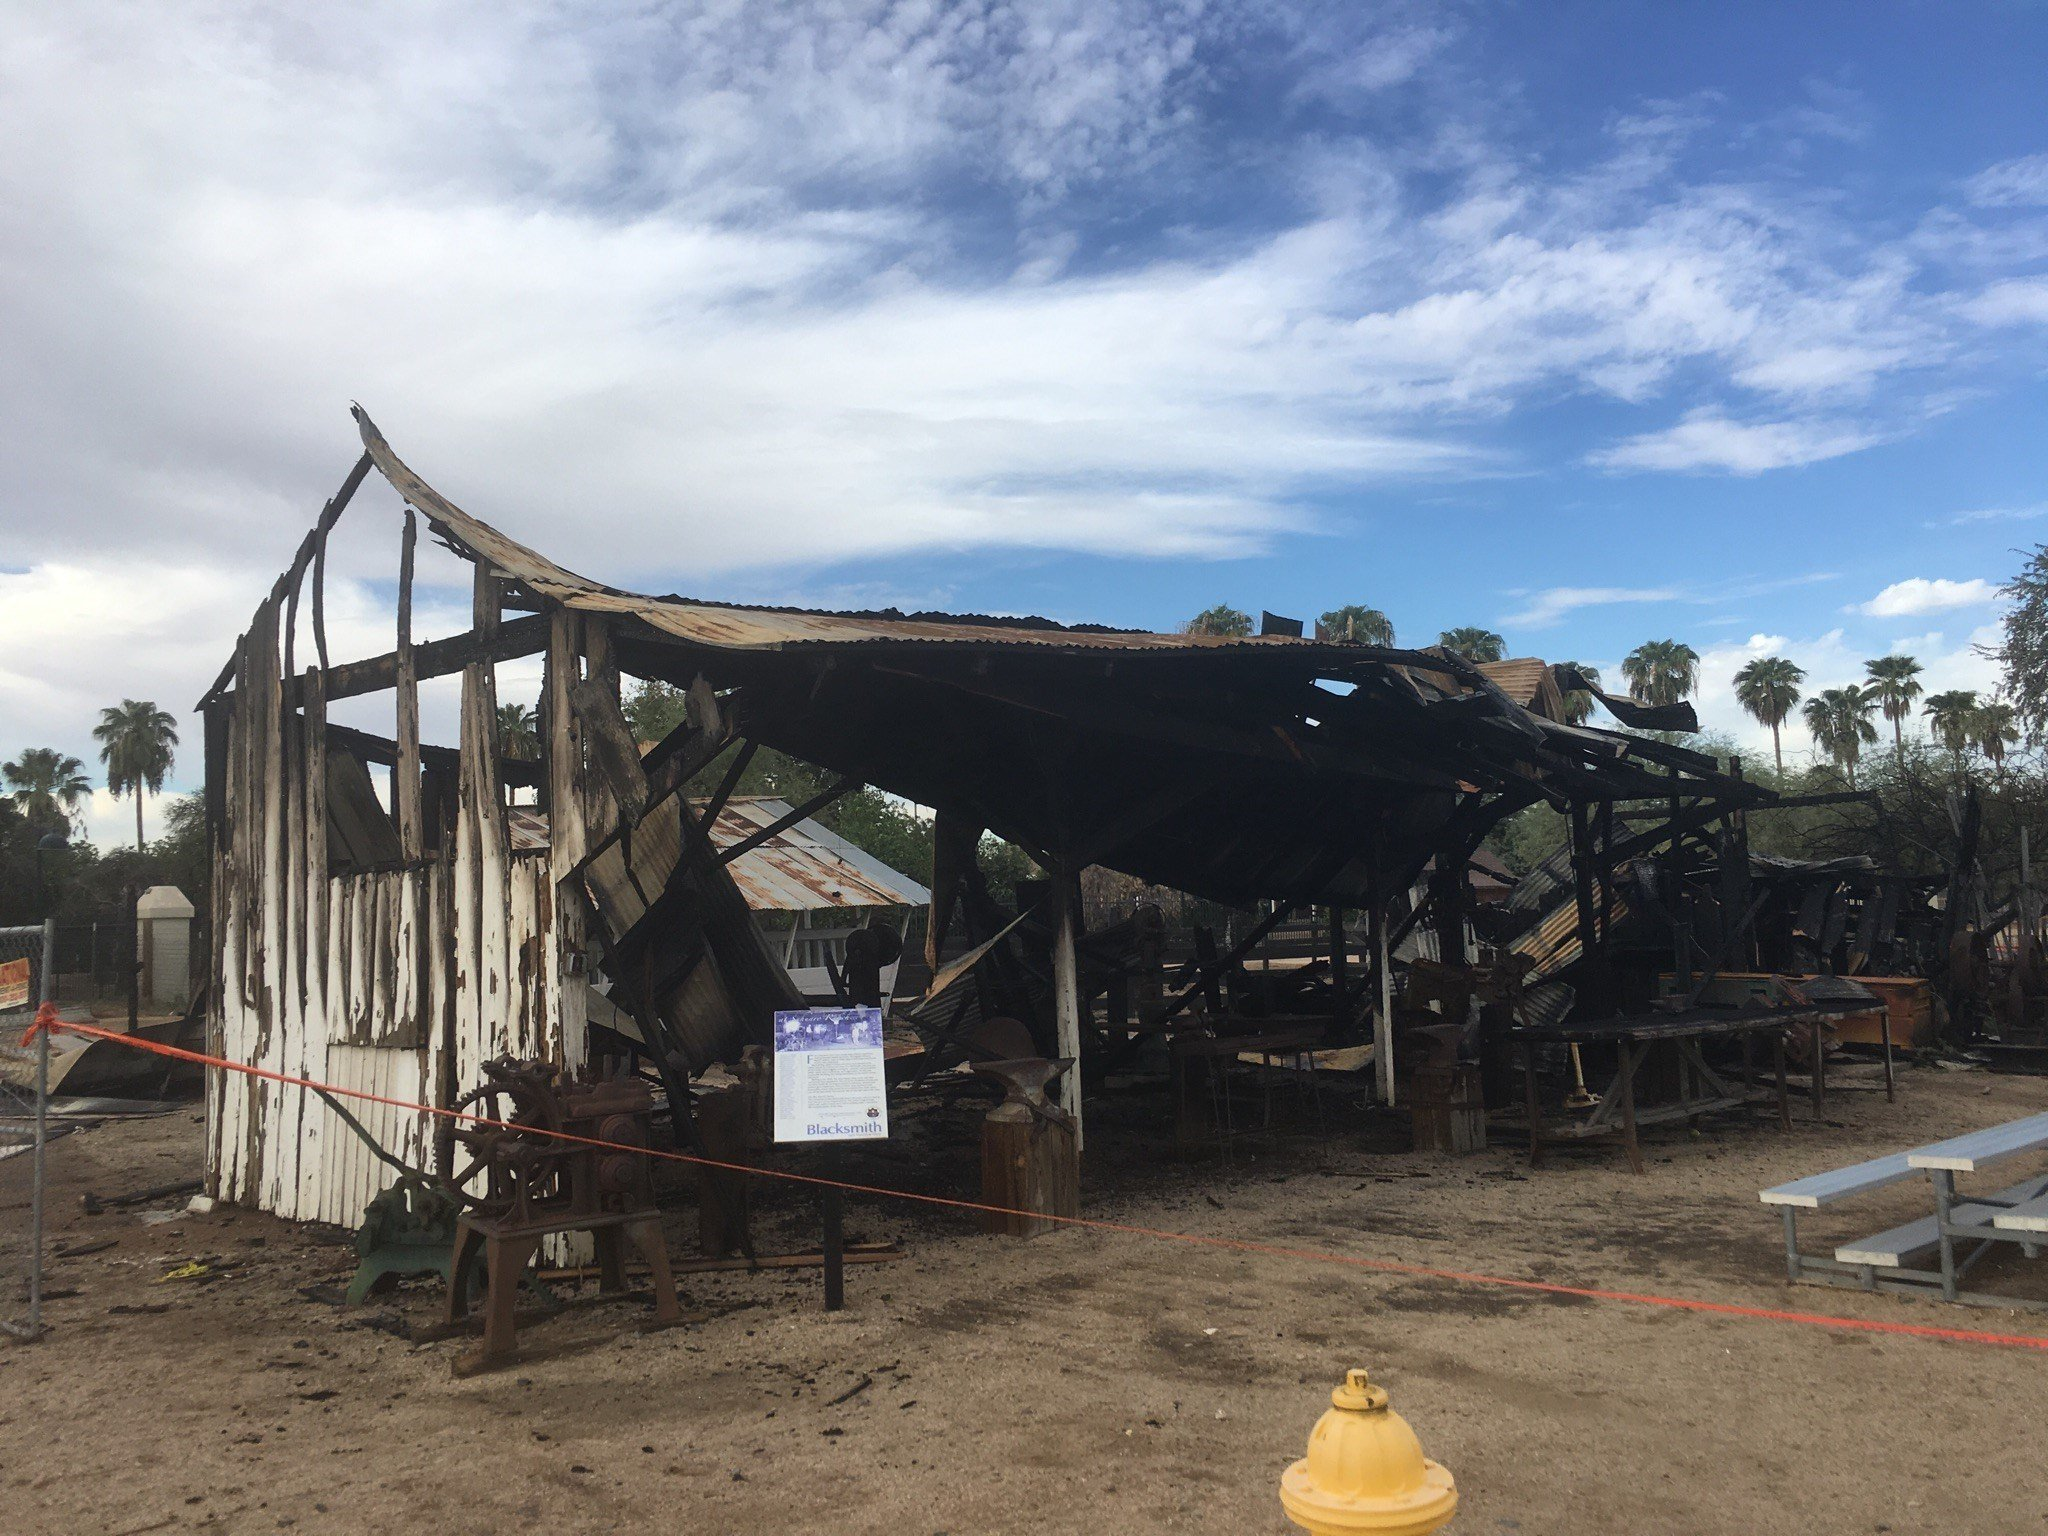 According to a news release, the Glendale Police Department and the Glendale Fire and Medical Department responded to structurefires at Sahuaro Ranch Park near 9800 N. 59th Avenue on September 18, 23 and 26. (Source: Glendale PD)